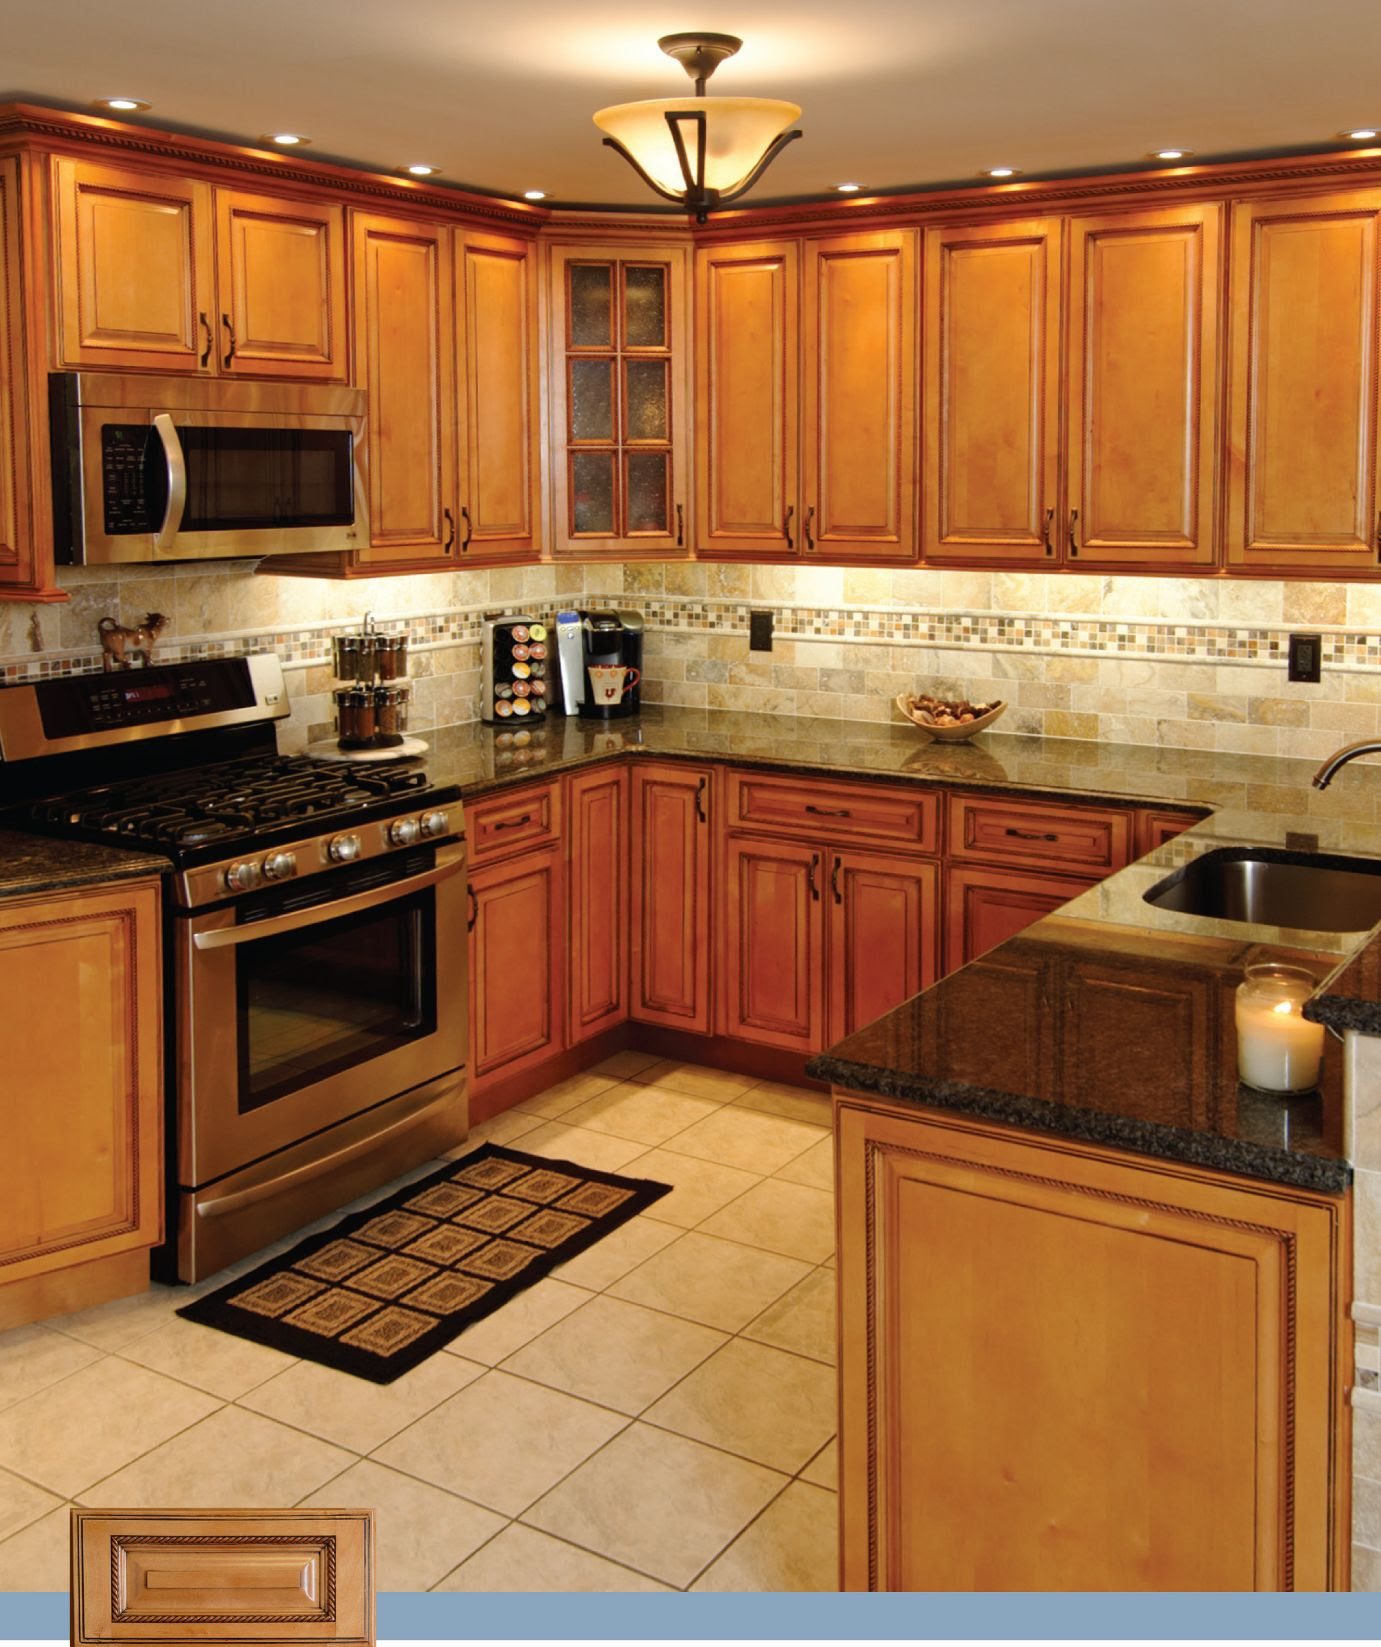 Images Of Maple Cabinet Kitchens - Feed Kitchens